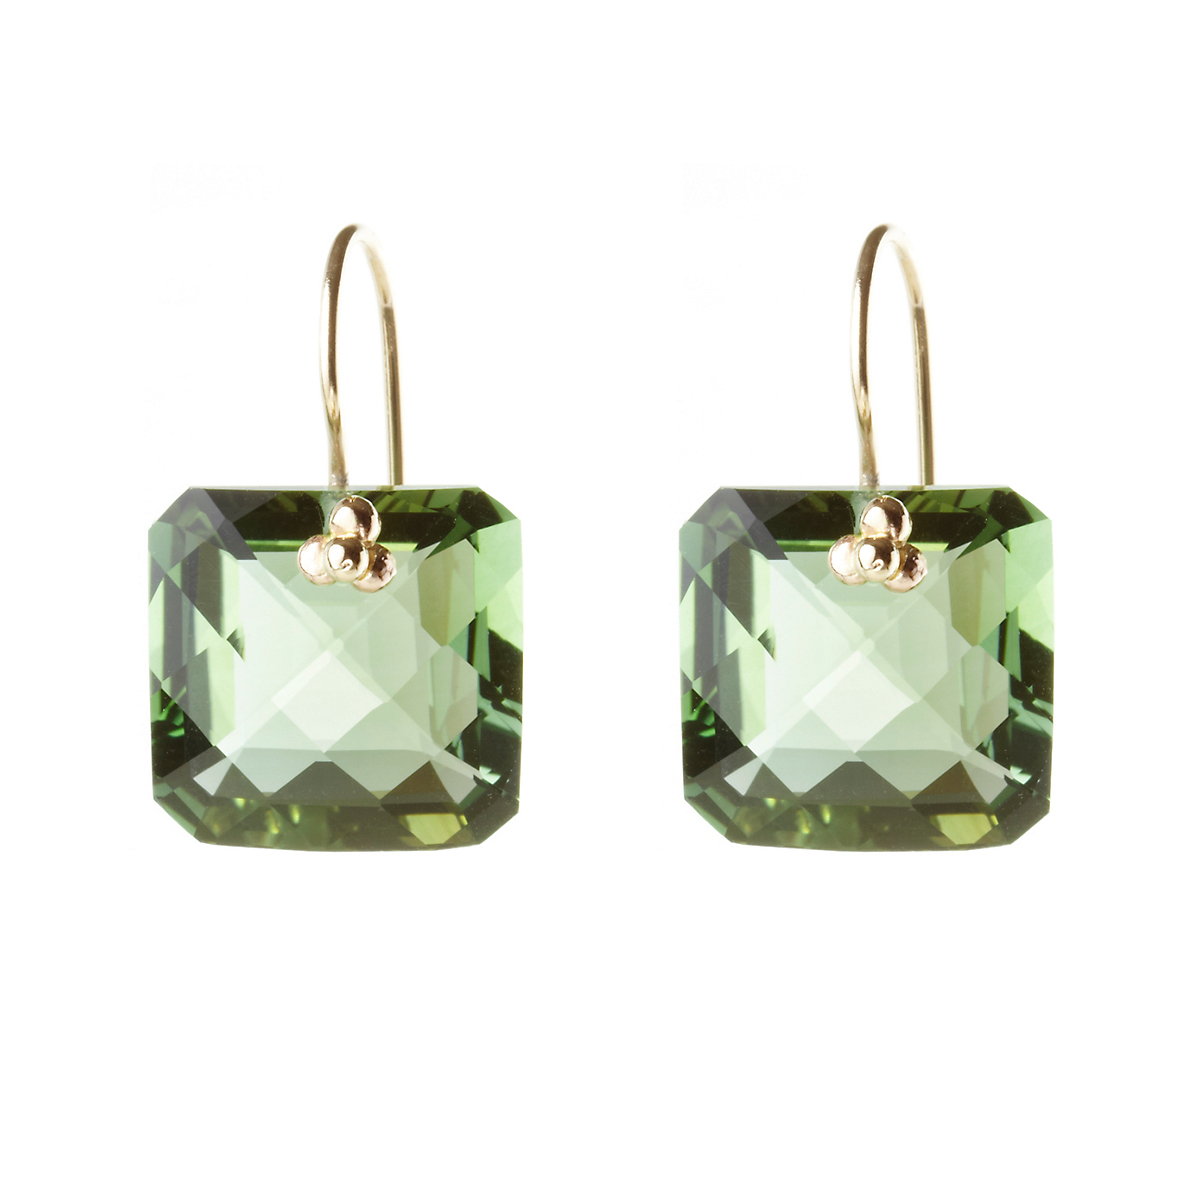 Nikki Baker Green Quartz Drop Earrings